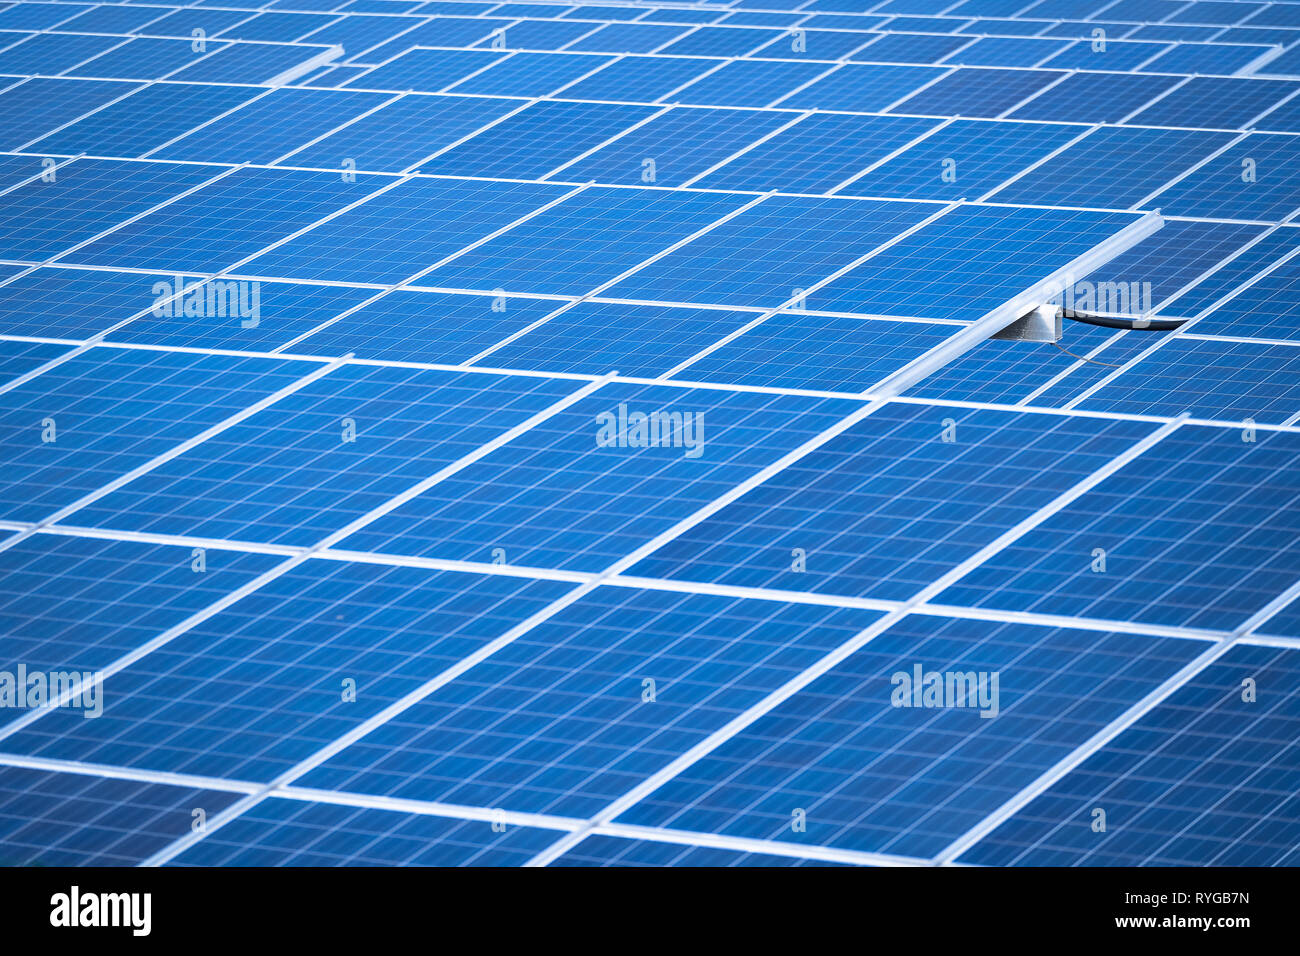 Solar panels in a row, solar panels grid, close up. photovoltaic system - Stock Image